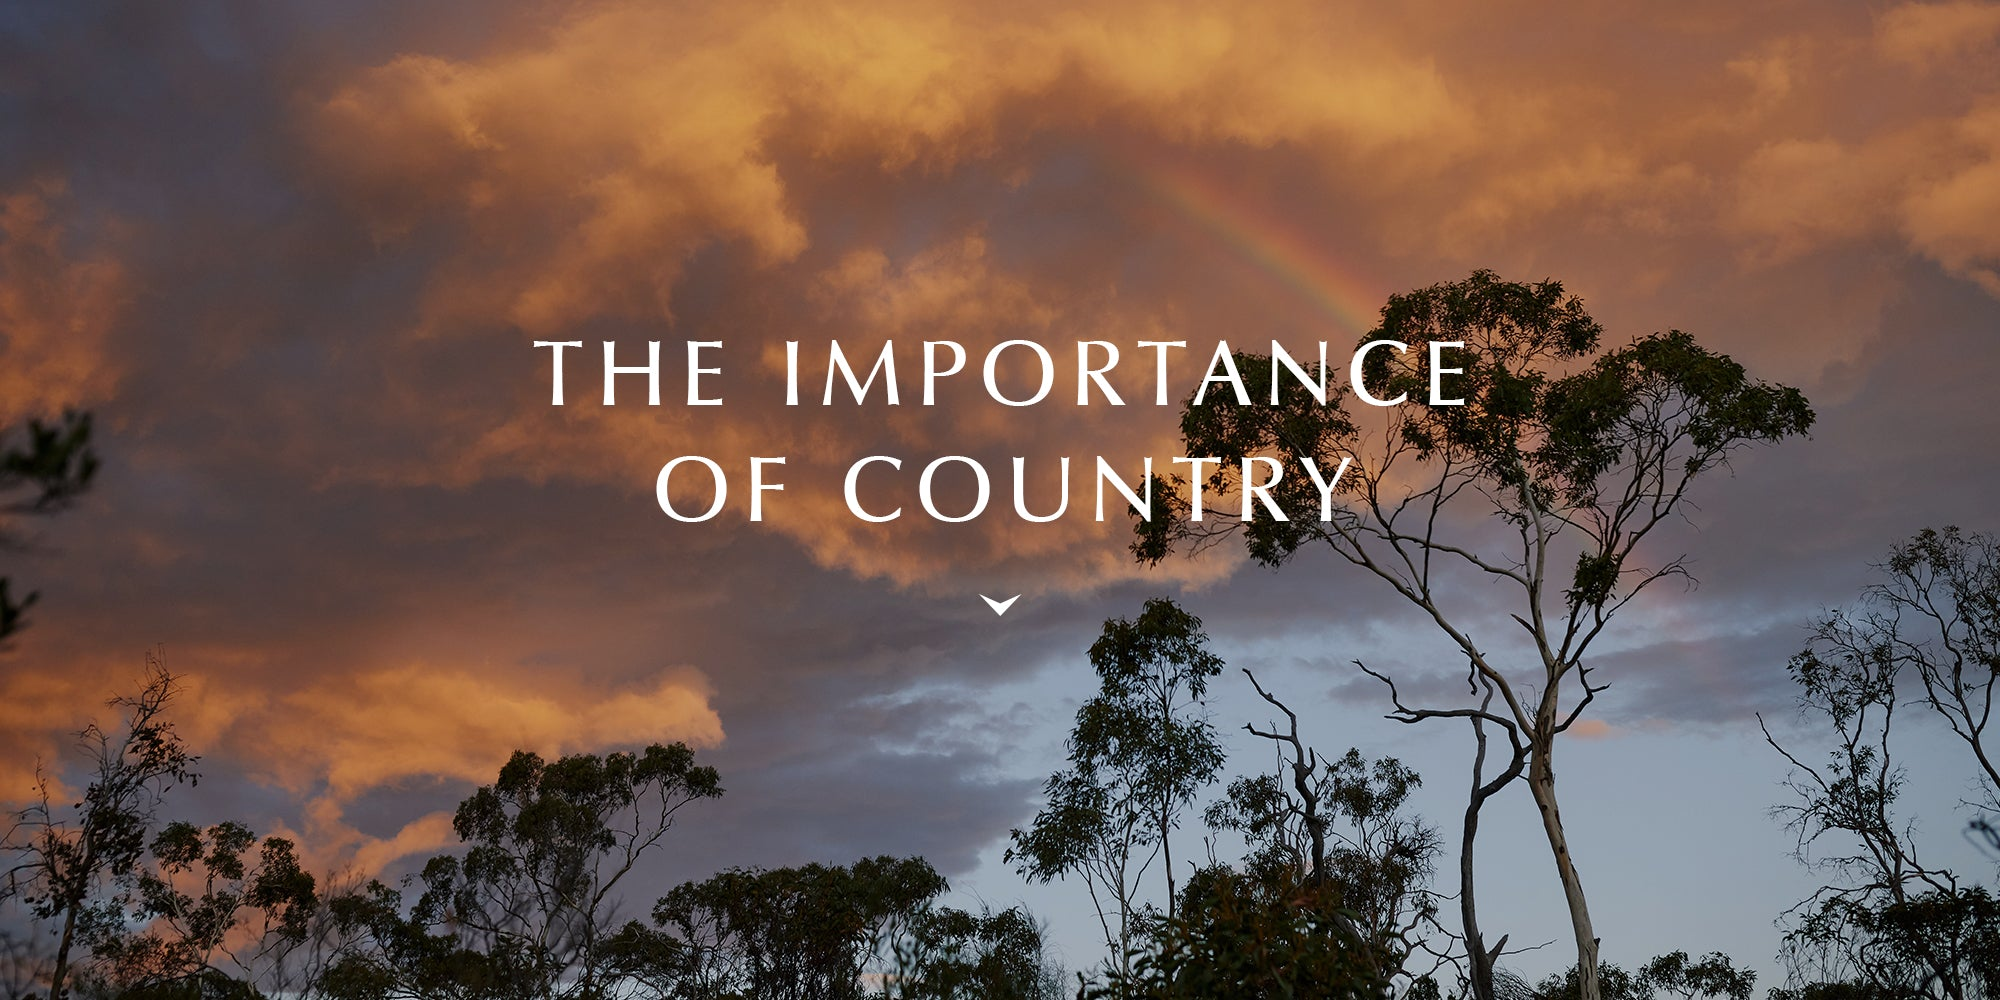 The Importance of Country